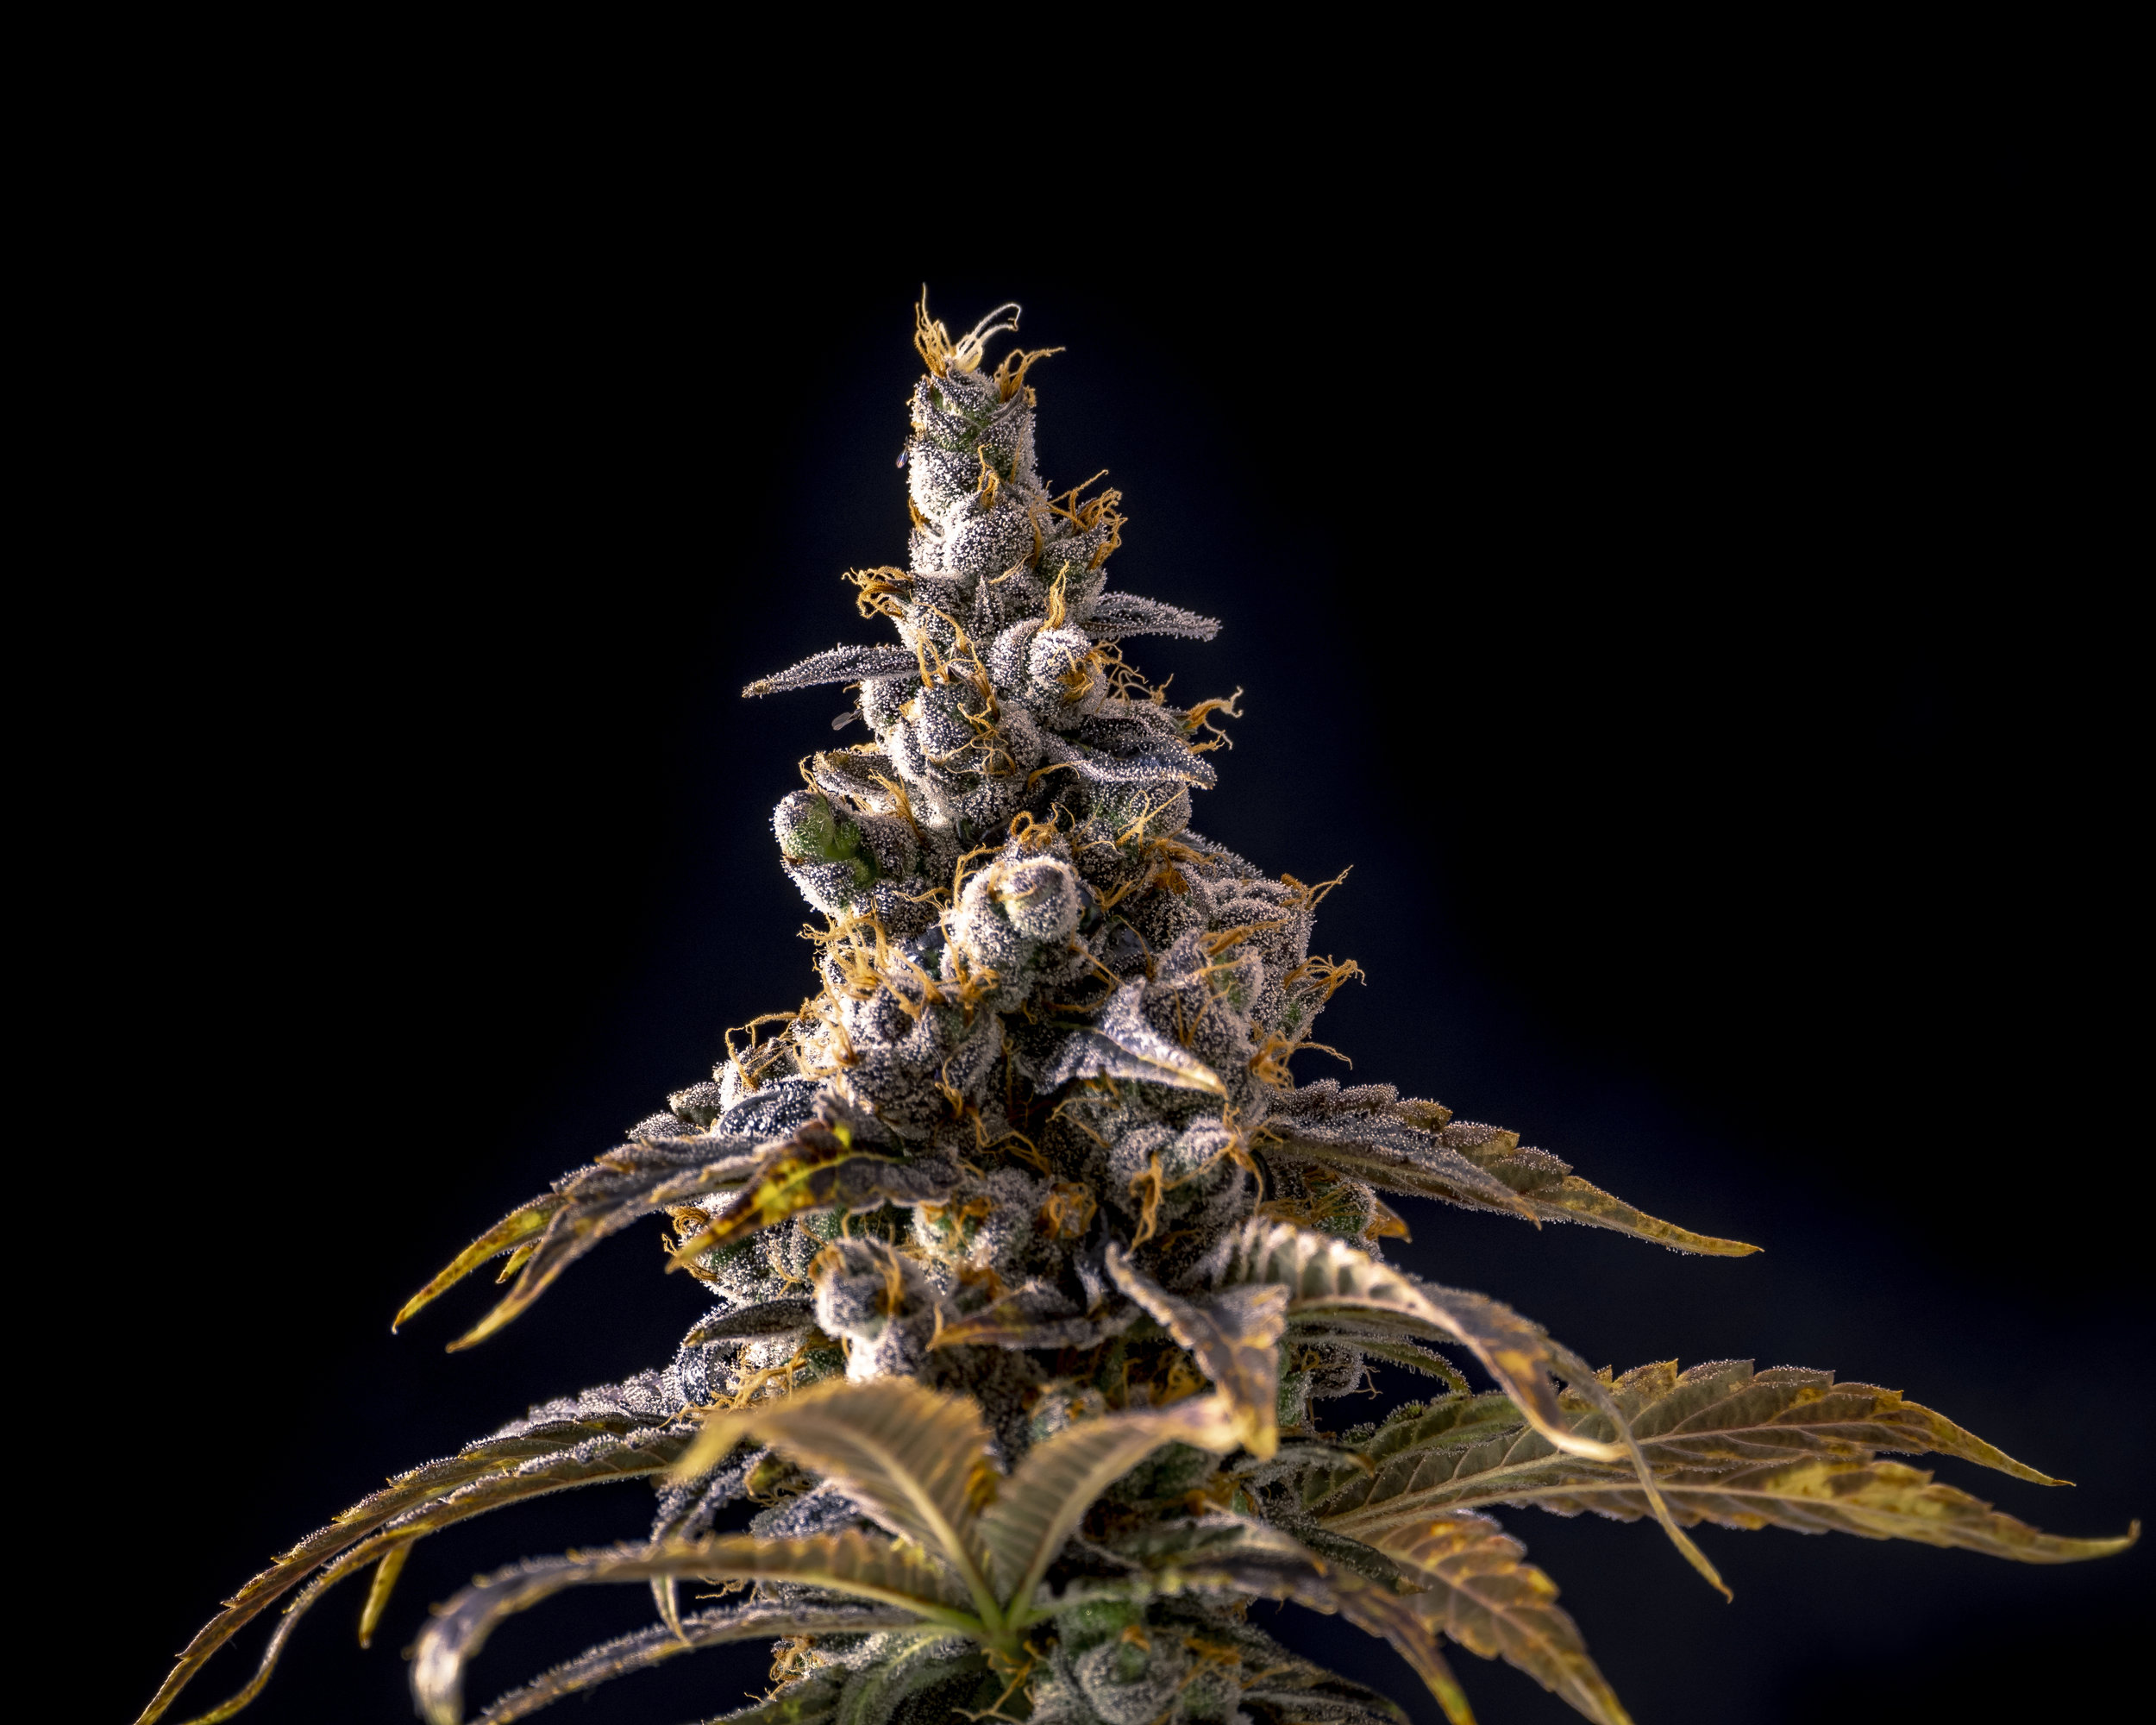 Top_of_Weed_Bud_Macro_Crystals_Isolated_by_Black_Background.jpg